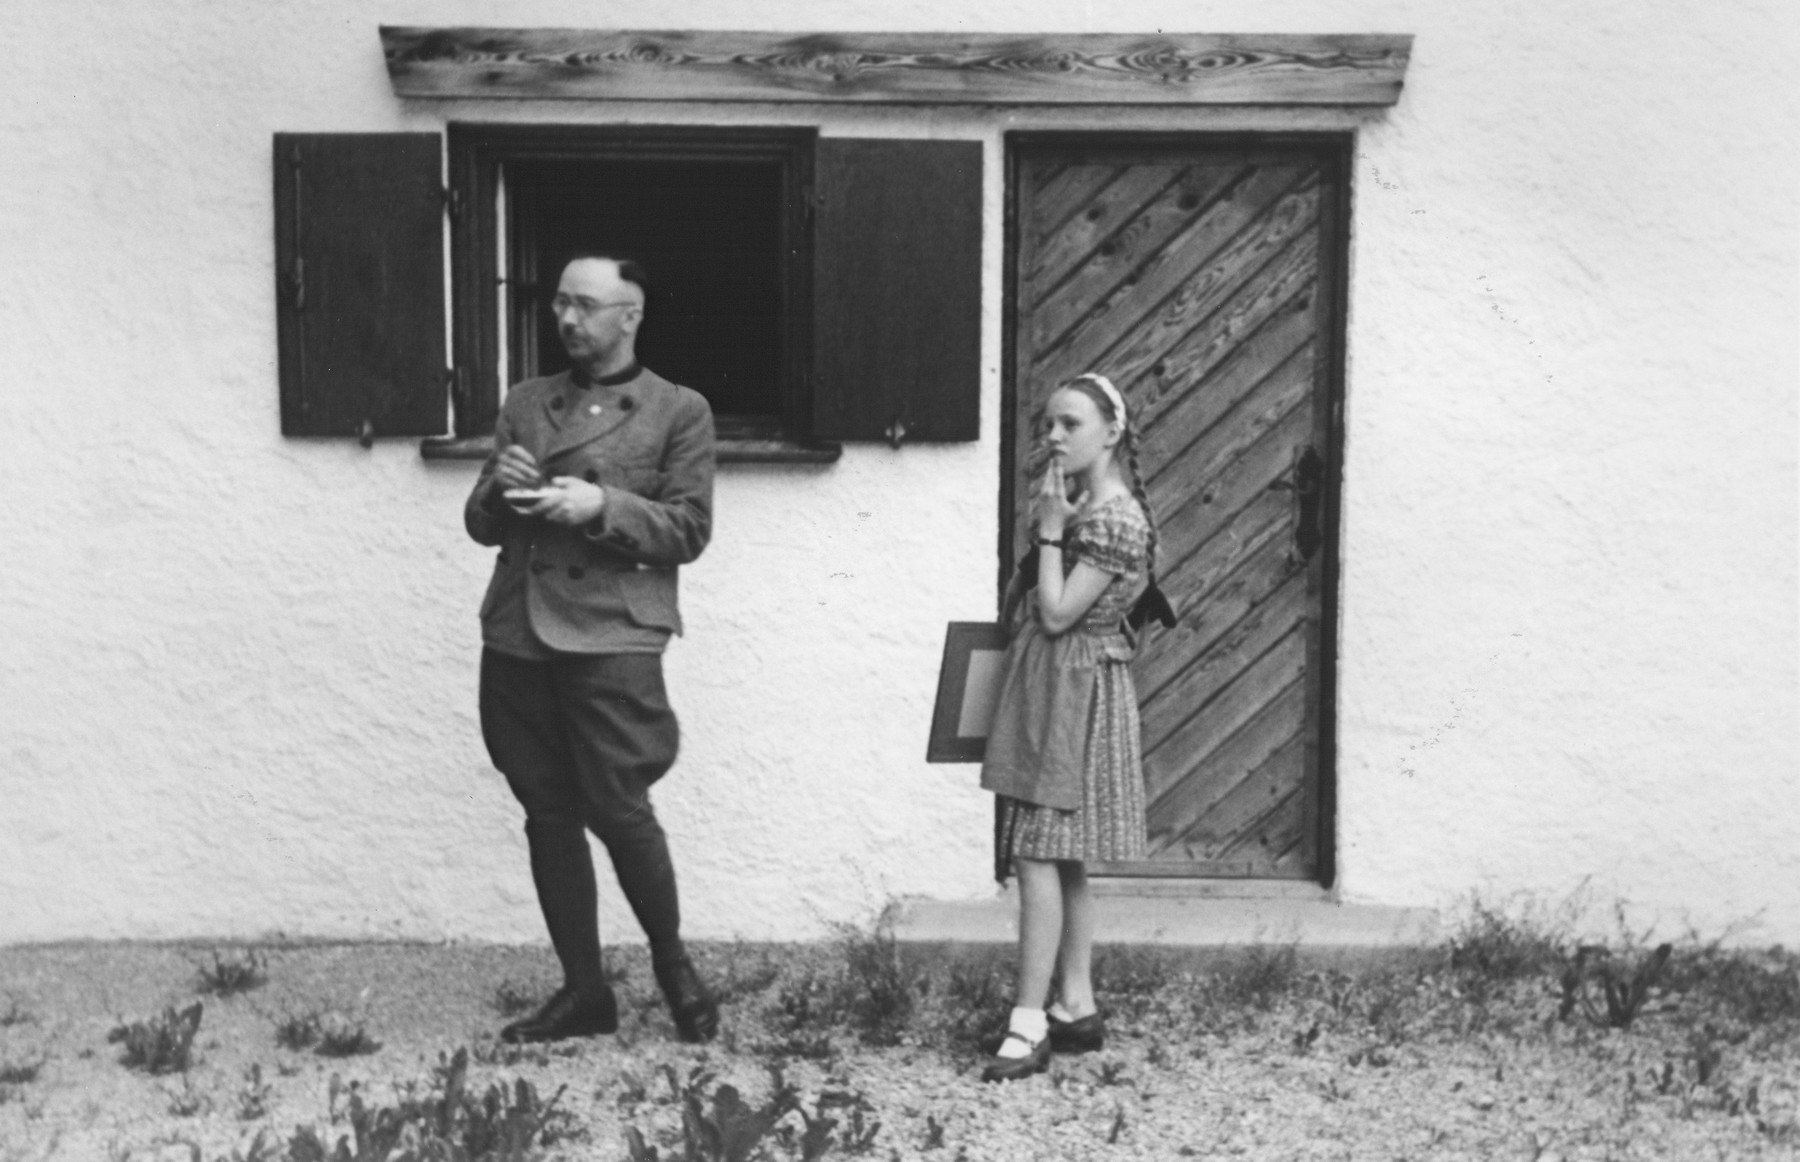 Heinrich Himmler with his daughter Gudrun in front of their home in Gmund am Tegernsee.